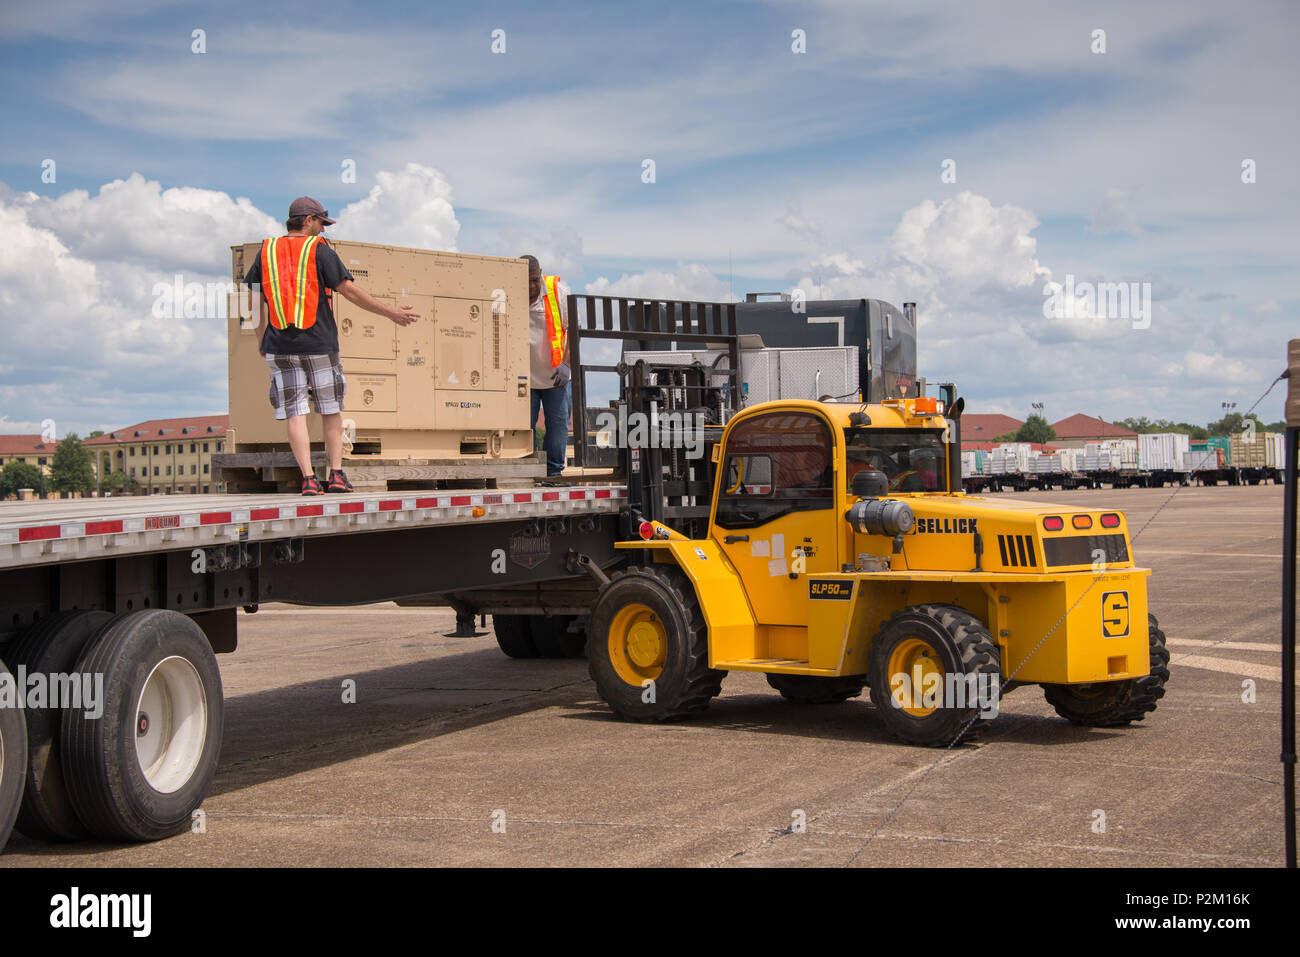 Maxwell, Ala. - A generator is unloaded at Maxwell AFB in preparation for Tropical Storm Hermine, Sep. 1, 2016. (US Air Force photo by Trey Ward/Released) - Stock Image